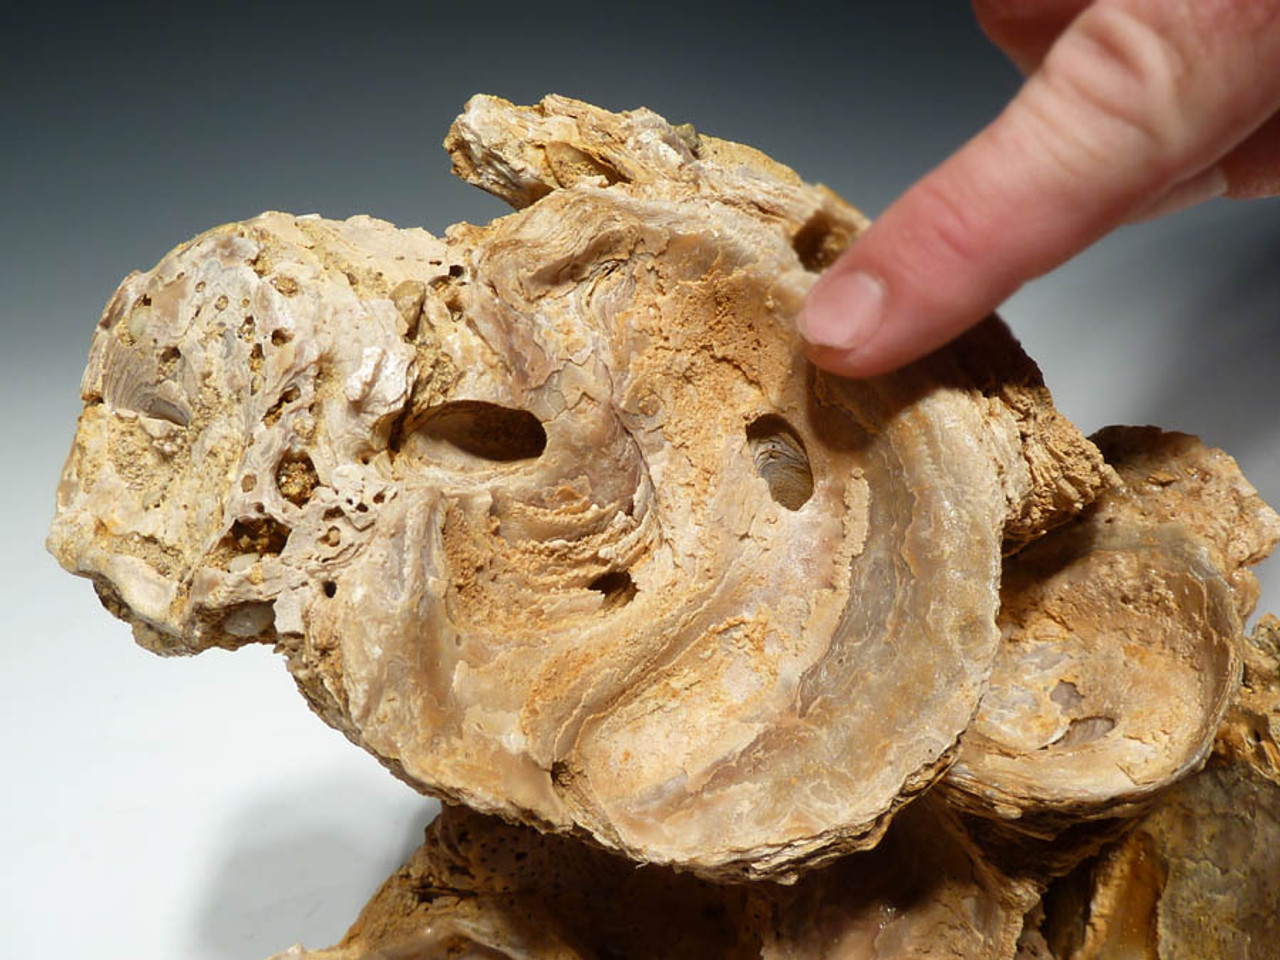 BIV-018 - PREHISTORIC OYSTER BED FOSSIL FROM THE OLIGOCENE PERIOD OF GERMANY